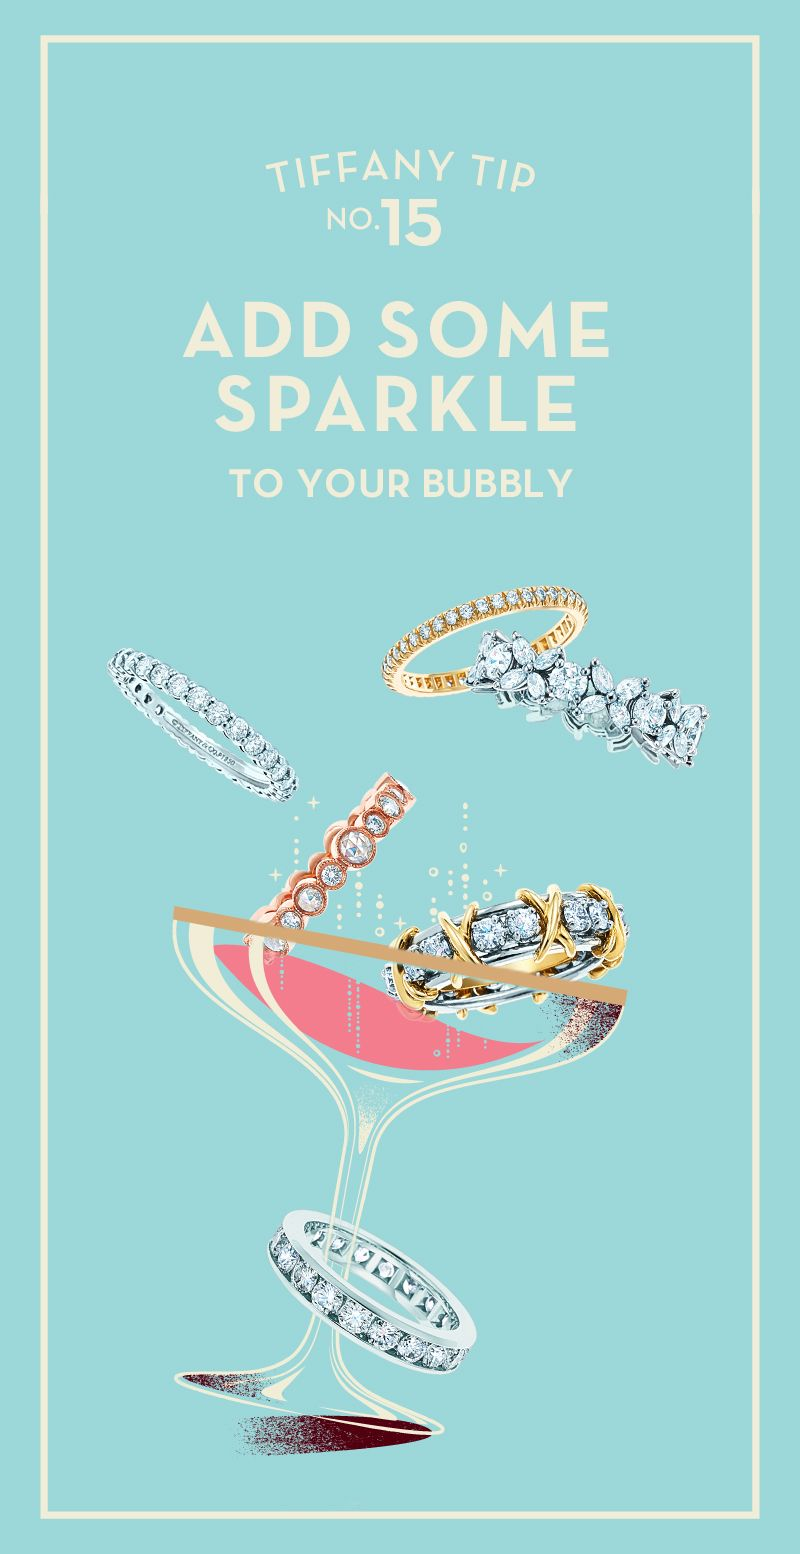 Tiffany Tip No 15 For Valentine S Day Jewels Pinterest